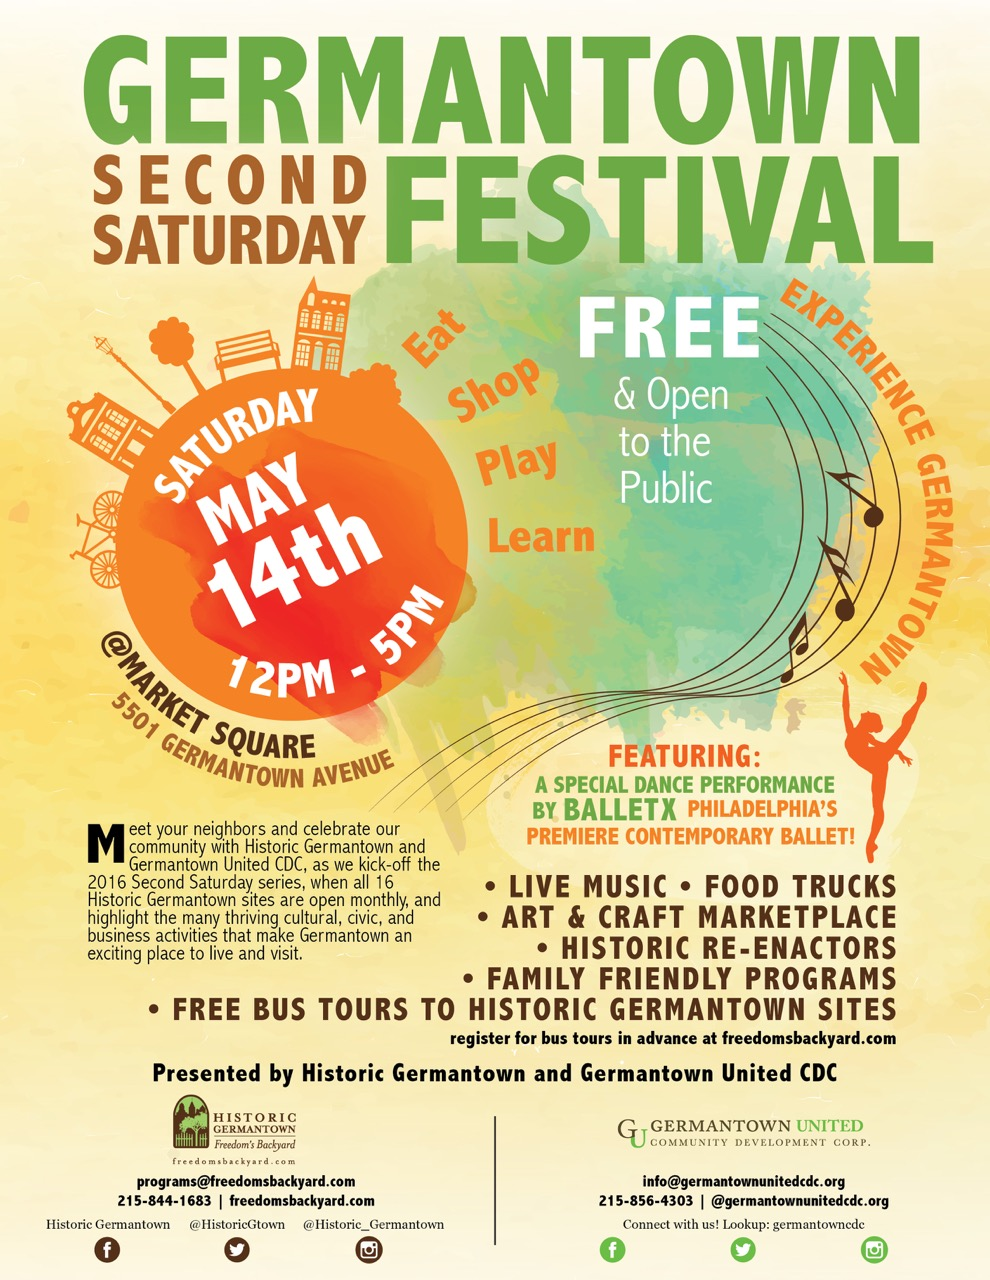 vending opportunities at the germantown second saturday festival